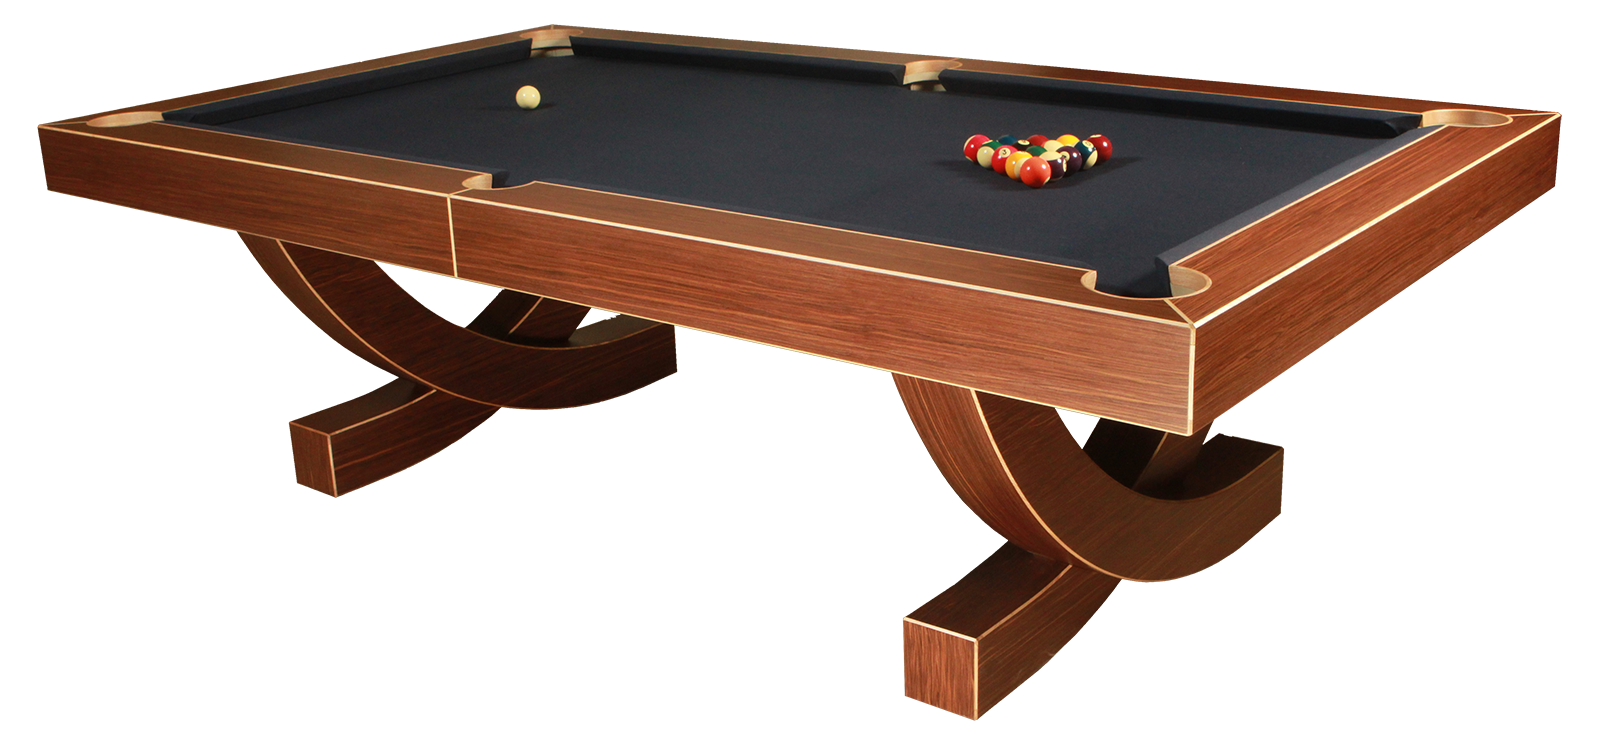 Designer Pool Tables rectangular pool table The Arc Contemporary Pool Table